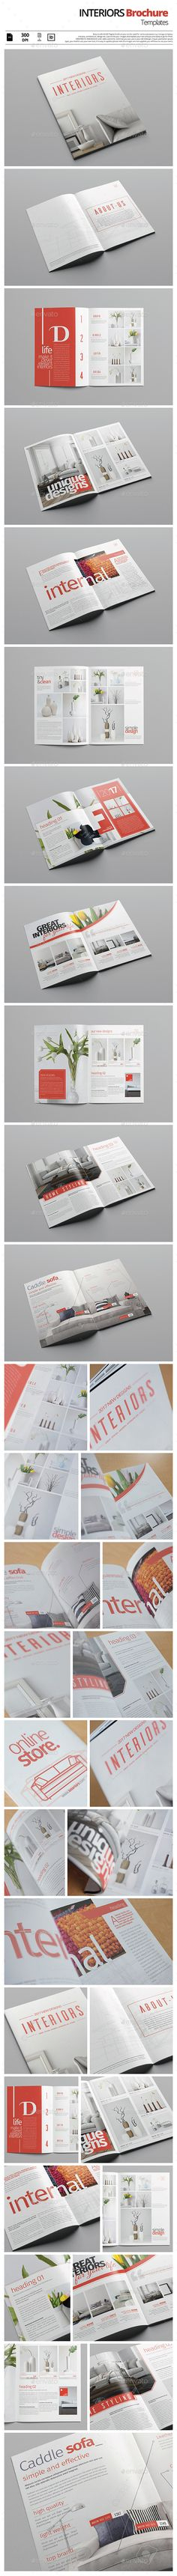 Interiors Brochure  #modern #portfolio #product • Available here → http://graphicriver.net/item/interiors-brochure/15866204?ref=pxcr                                                                                                                                                                                 More